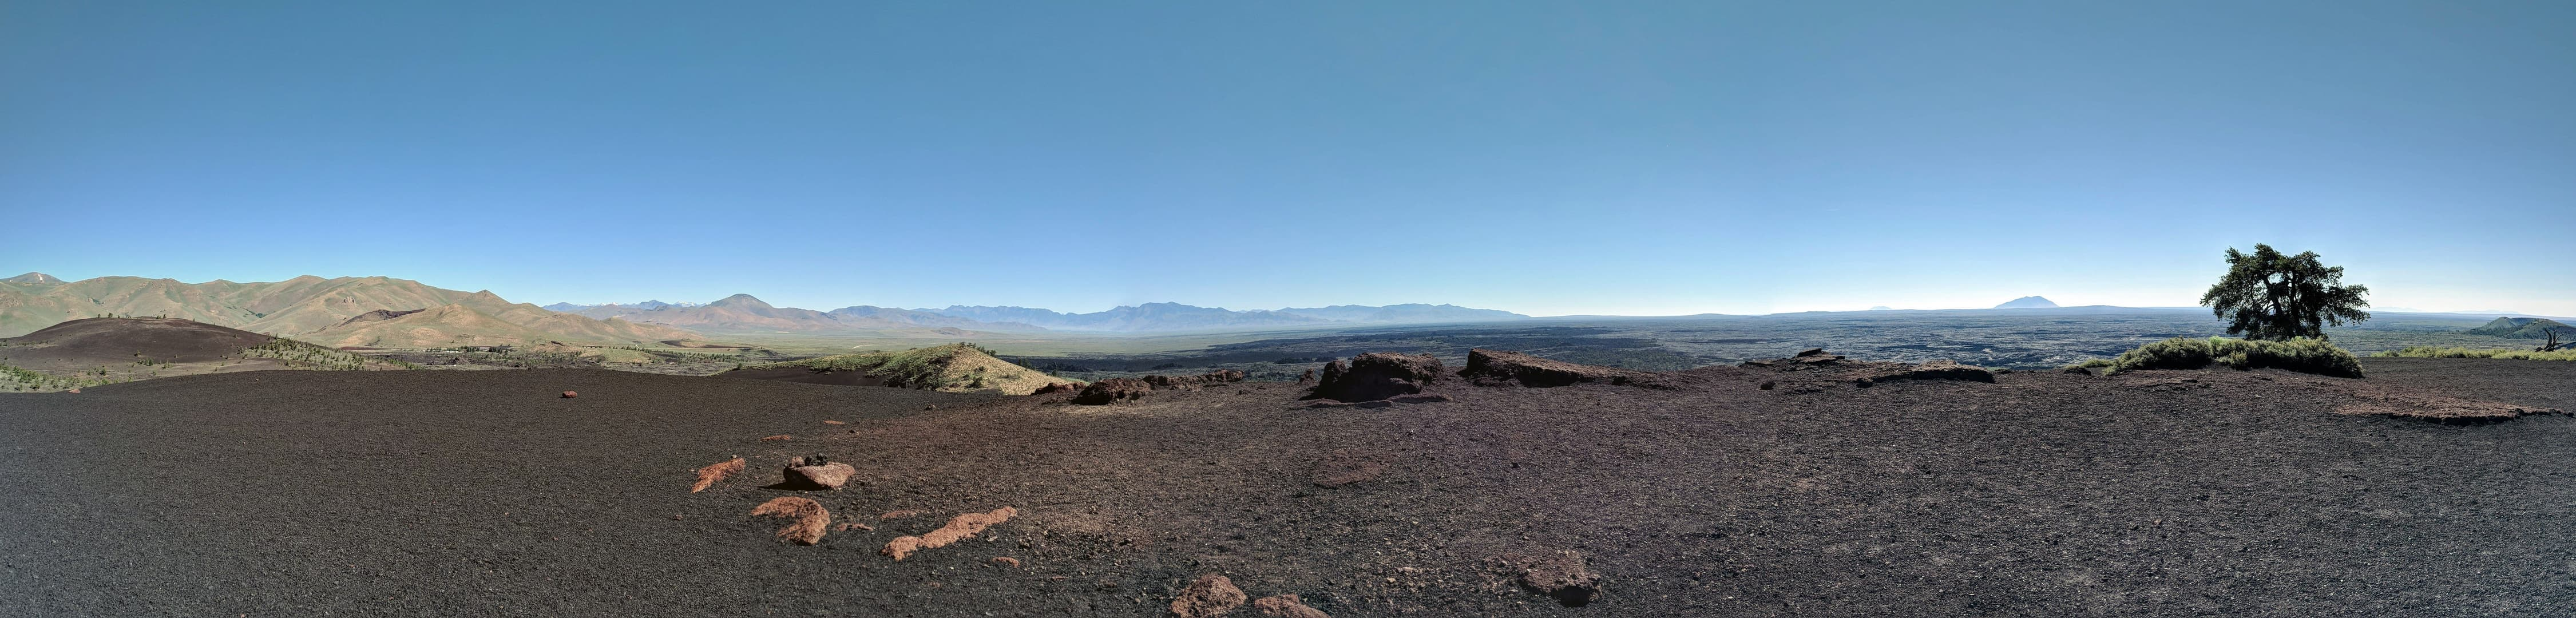 A panorama taken from the top of a black volcanic cinder cone across an immense lava field. Mountains dominate the left, but to the right the barren lava field stretches to the horizon. In the far distance, an immense lava dome rises above the horizon.